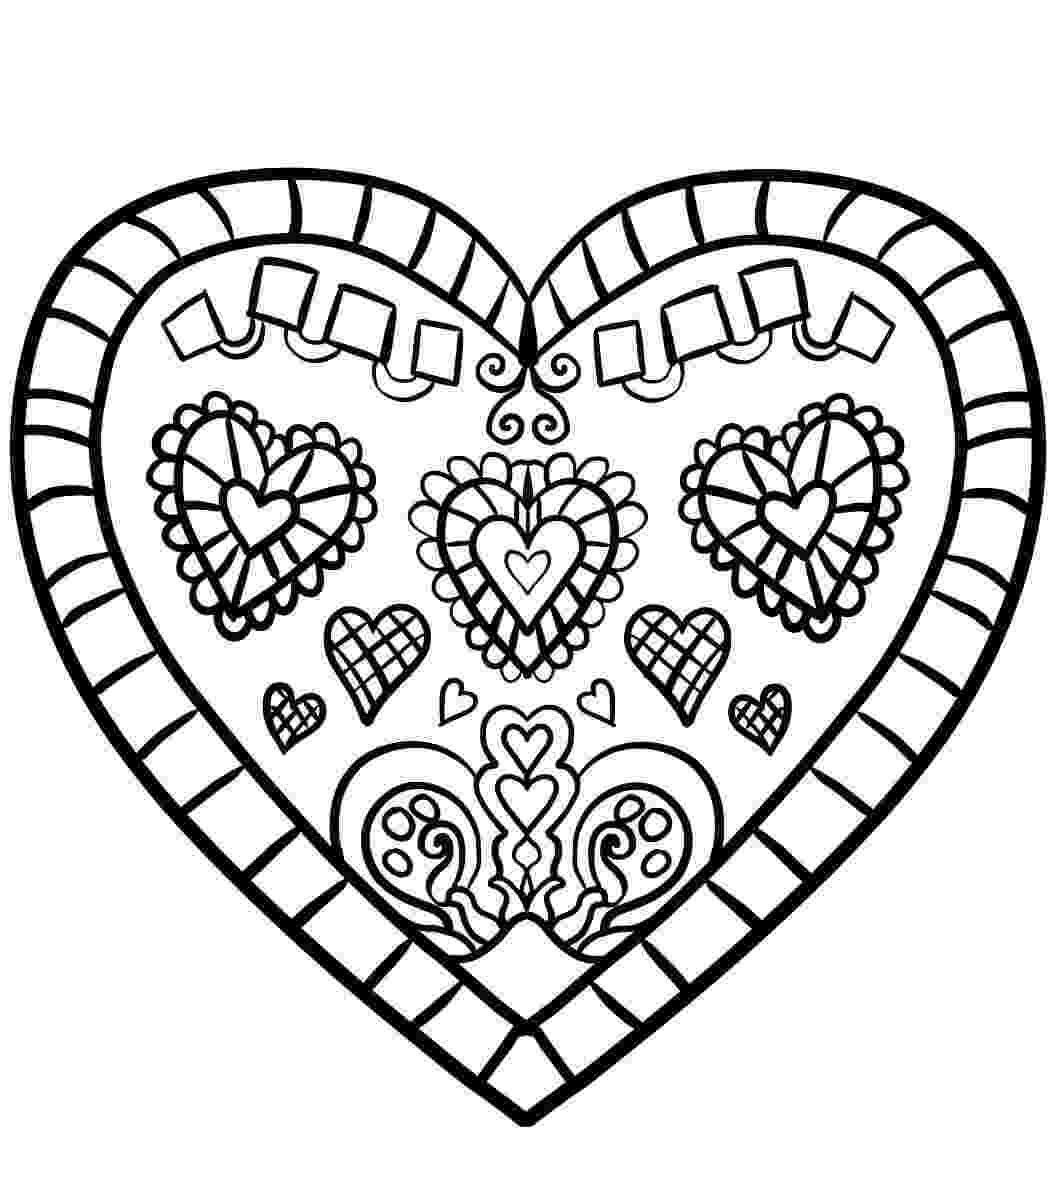 coloring pages of a heart heart coloring pages heart coloring pages emoji pages heart of a coloring